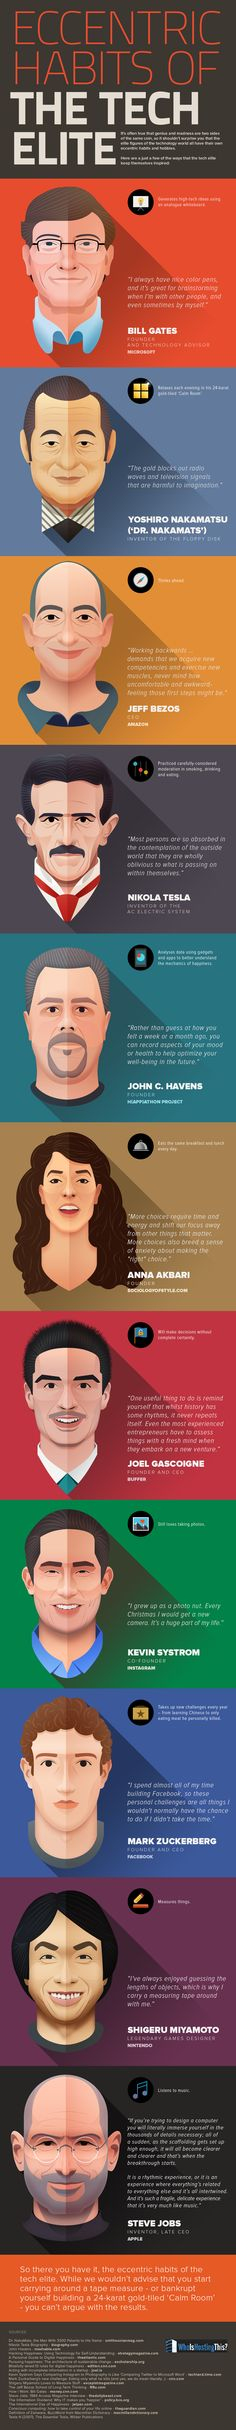 11 Eccentric Habits of Tech Geniuses  [by WhoIsHostingThis -- via #tipsographic]. More tech tips at tipsographic.com